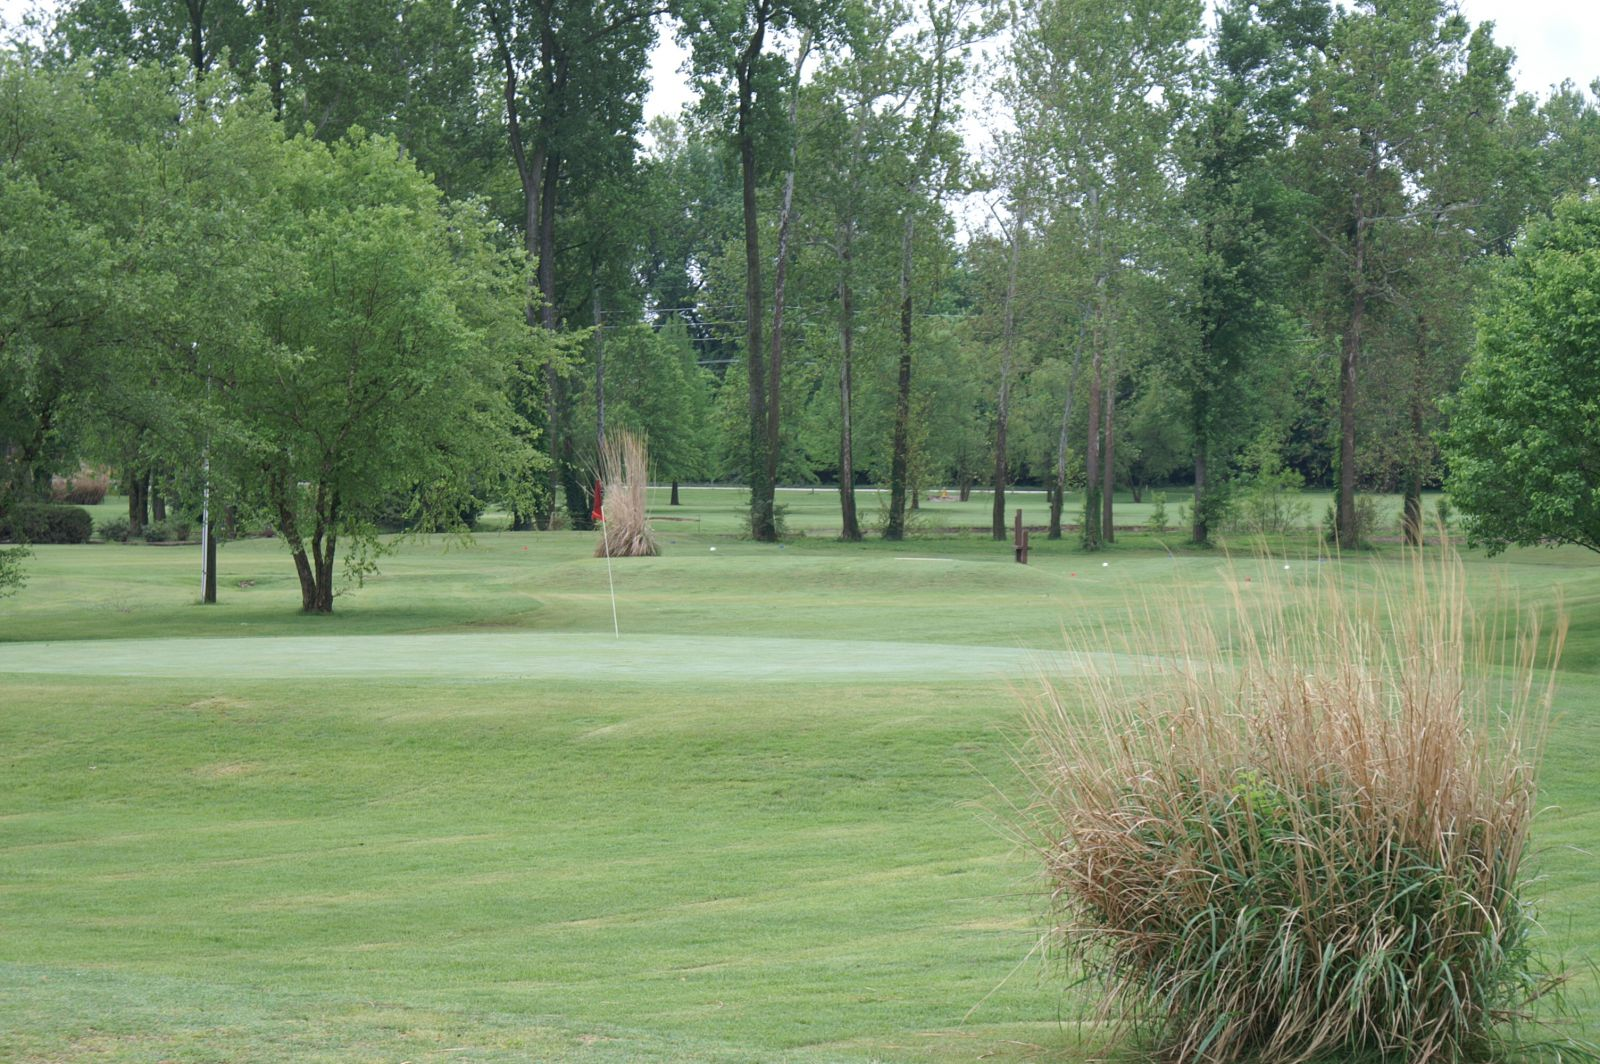 A closeup of the green for one of the holes on the par 3, 9-hole course at the Family Golf & Learning Center in St. Louis